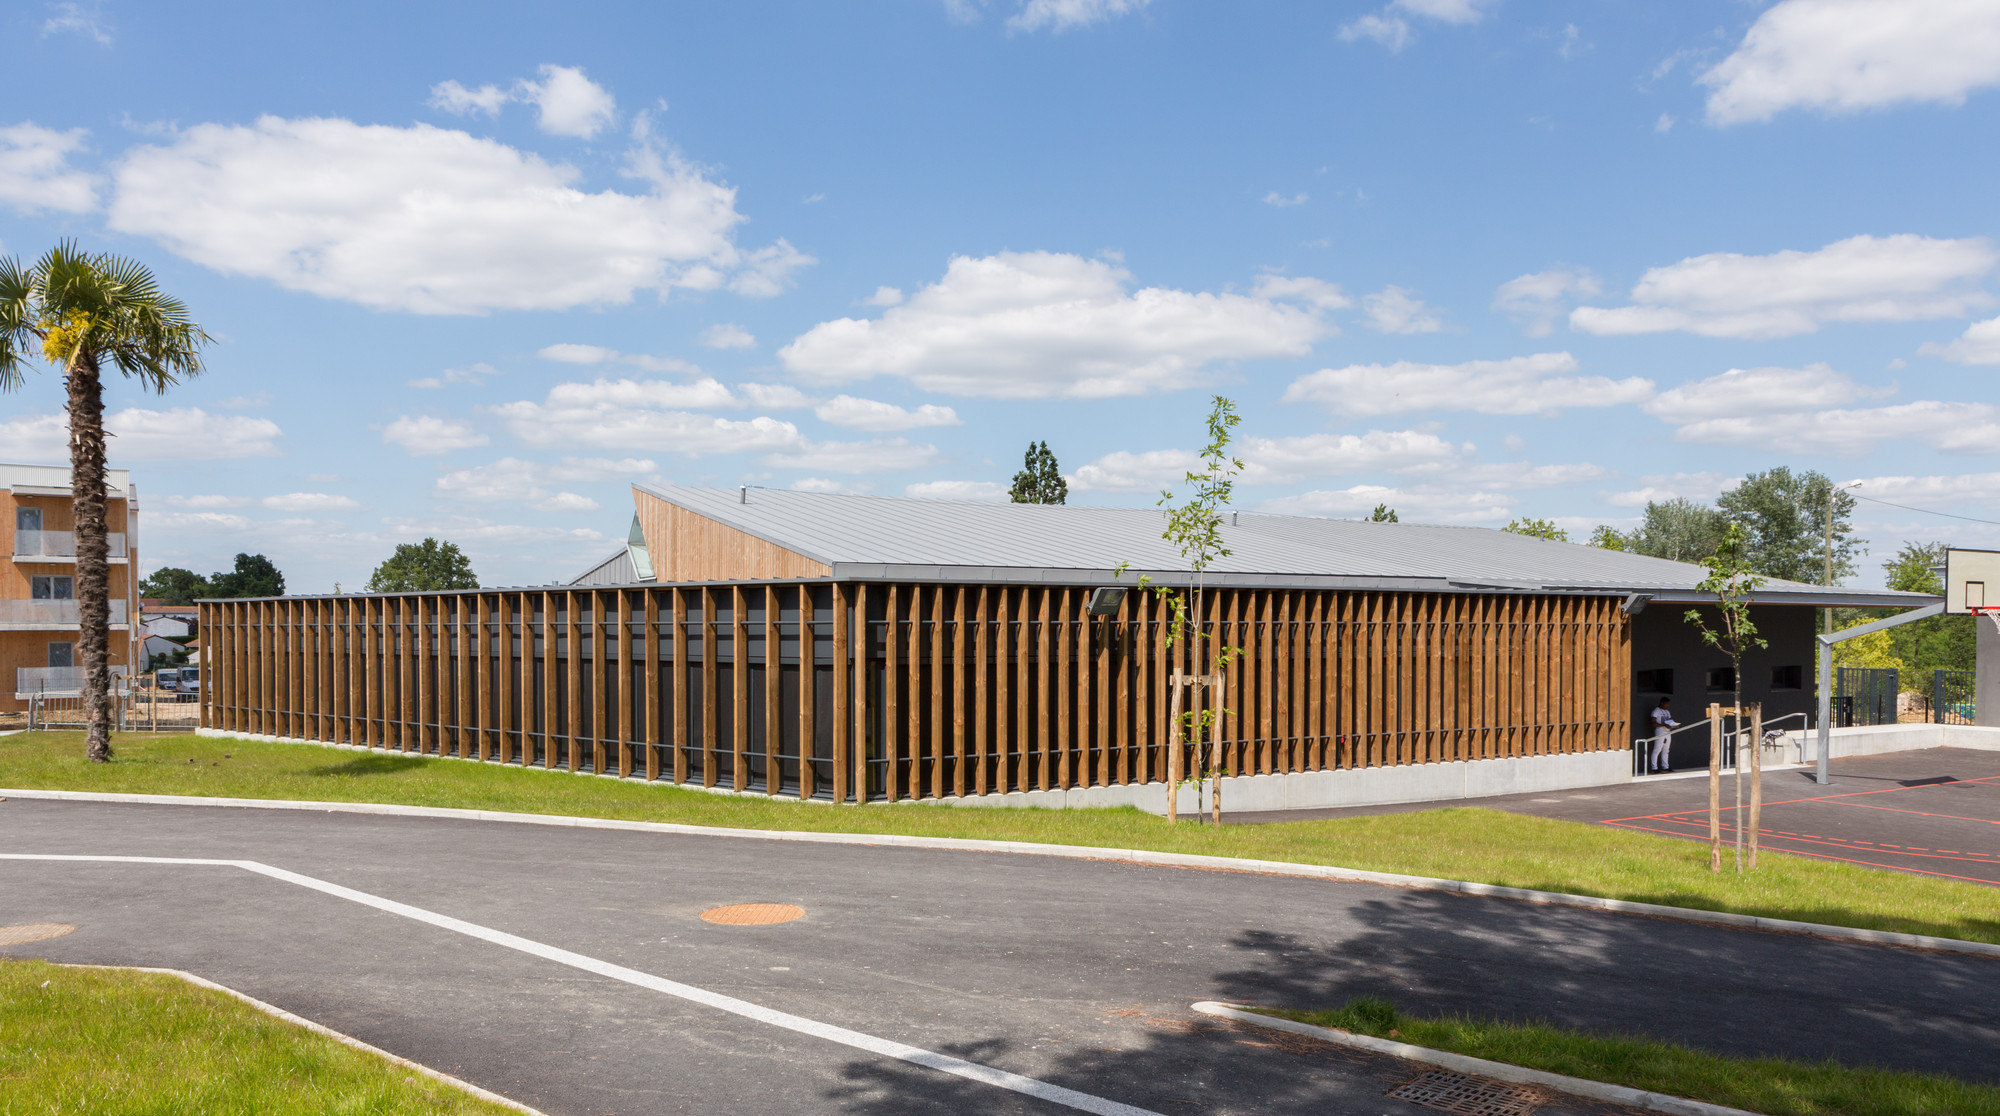 Michel de Montaigne Middle School in Lormont / art'ur architectes, © 11h45